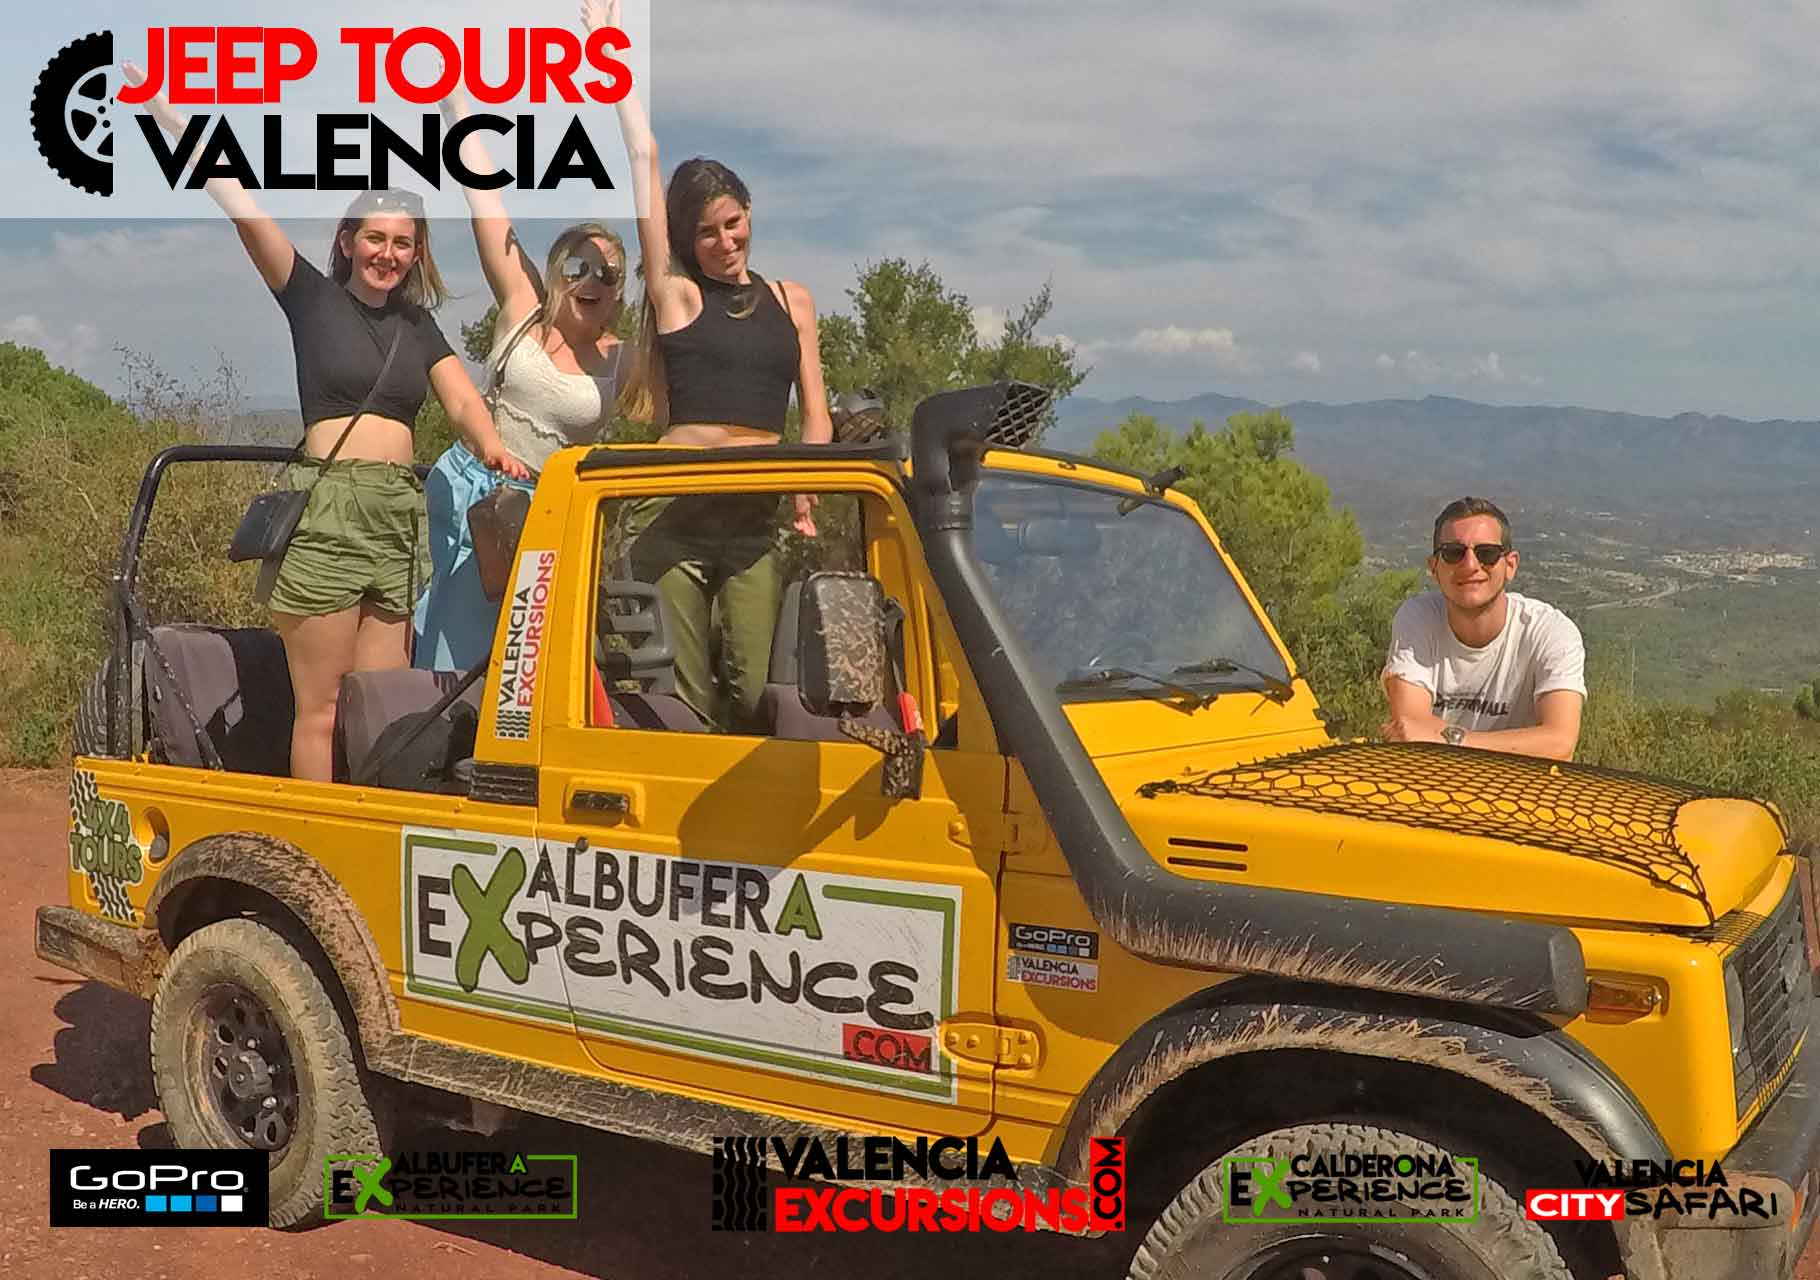 Sightseeing Jeep Tour in Albufera National Park during Albufera EXperience Jeep Tour Valencia